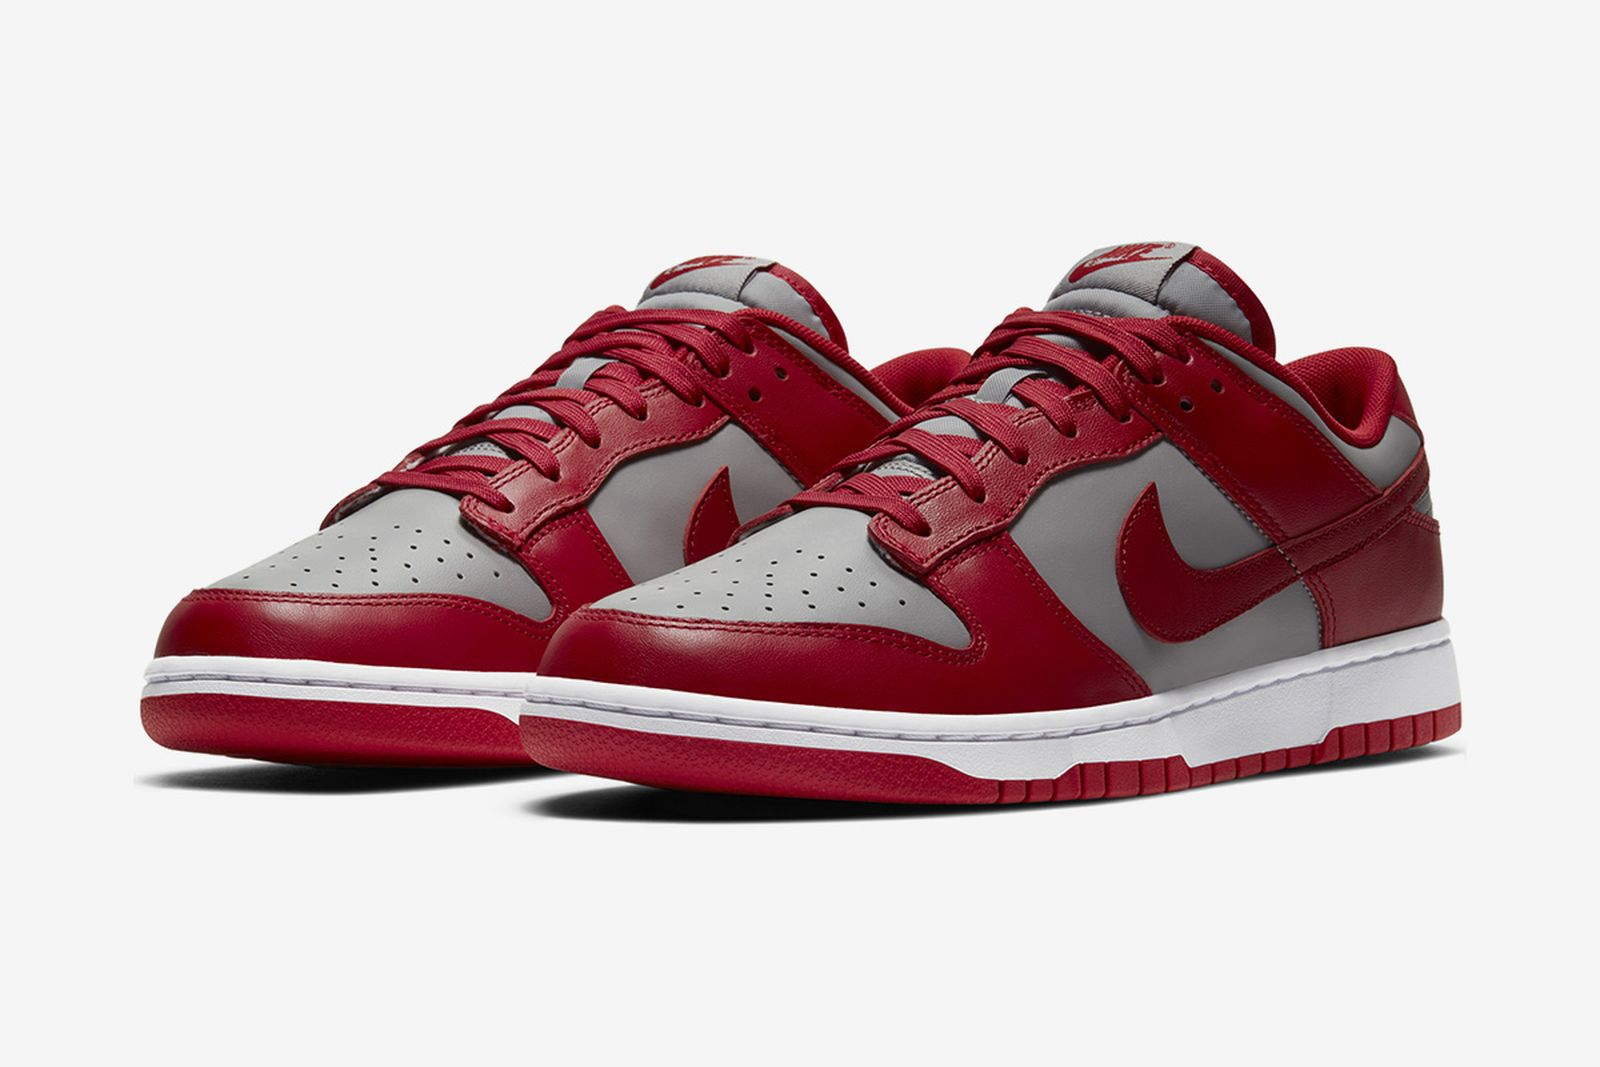 nike-dunk-spring-2021-release-date-price-1-12